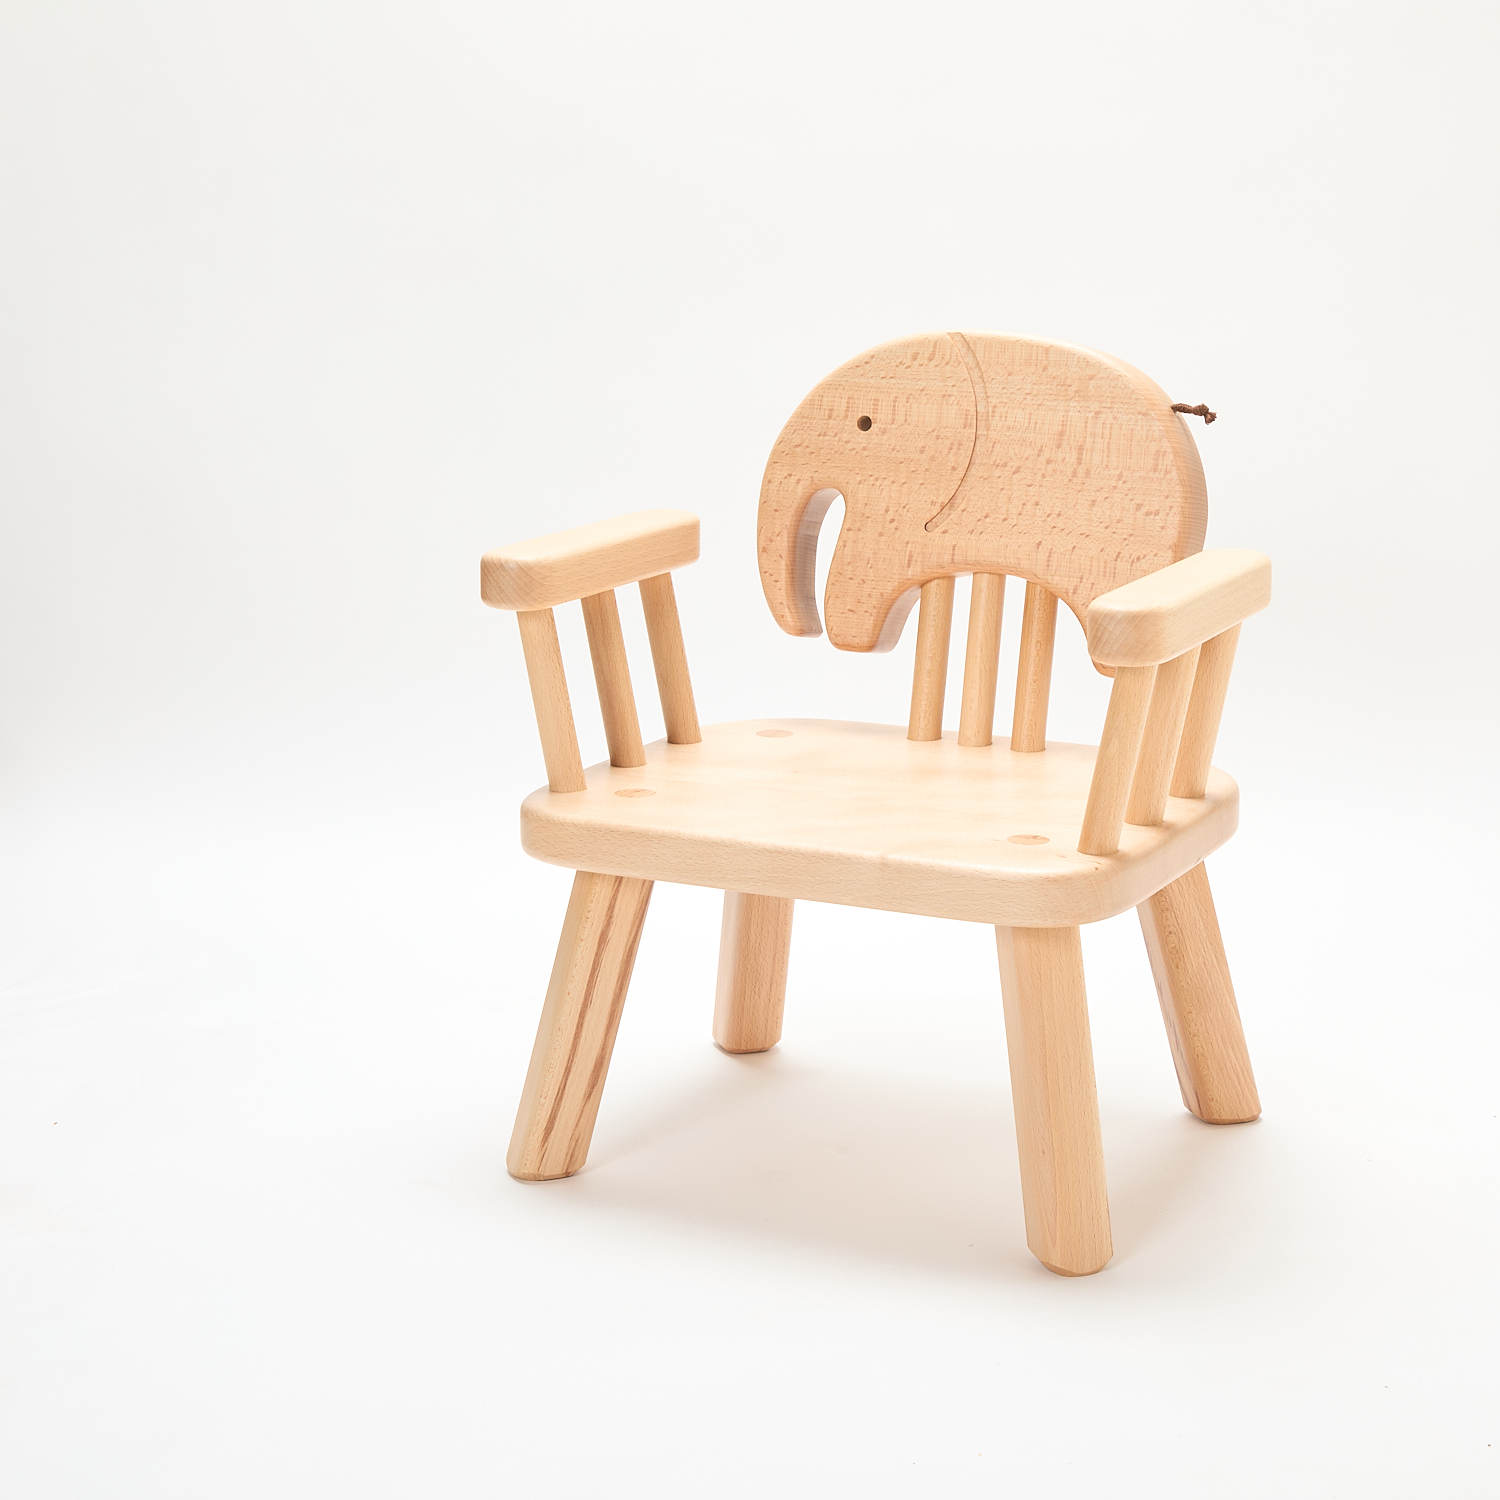 Child-sized Animal Chair with Armrests